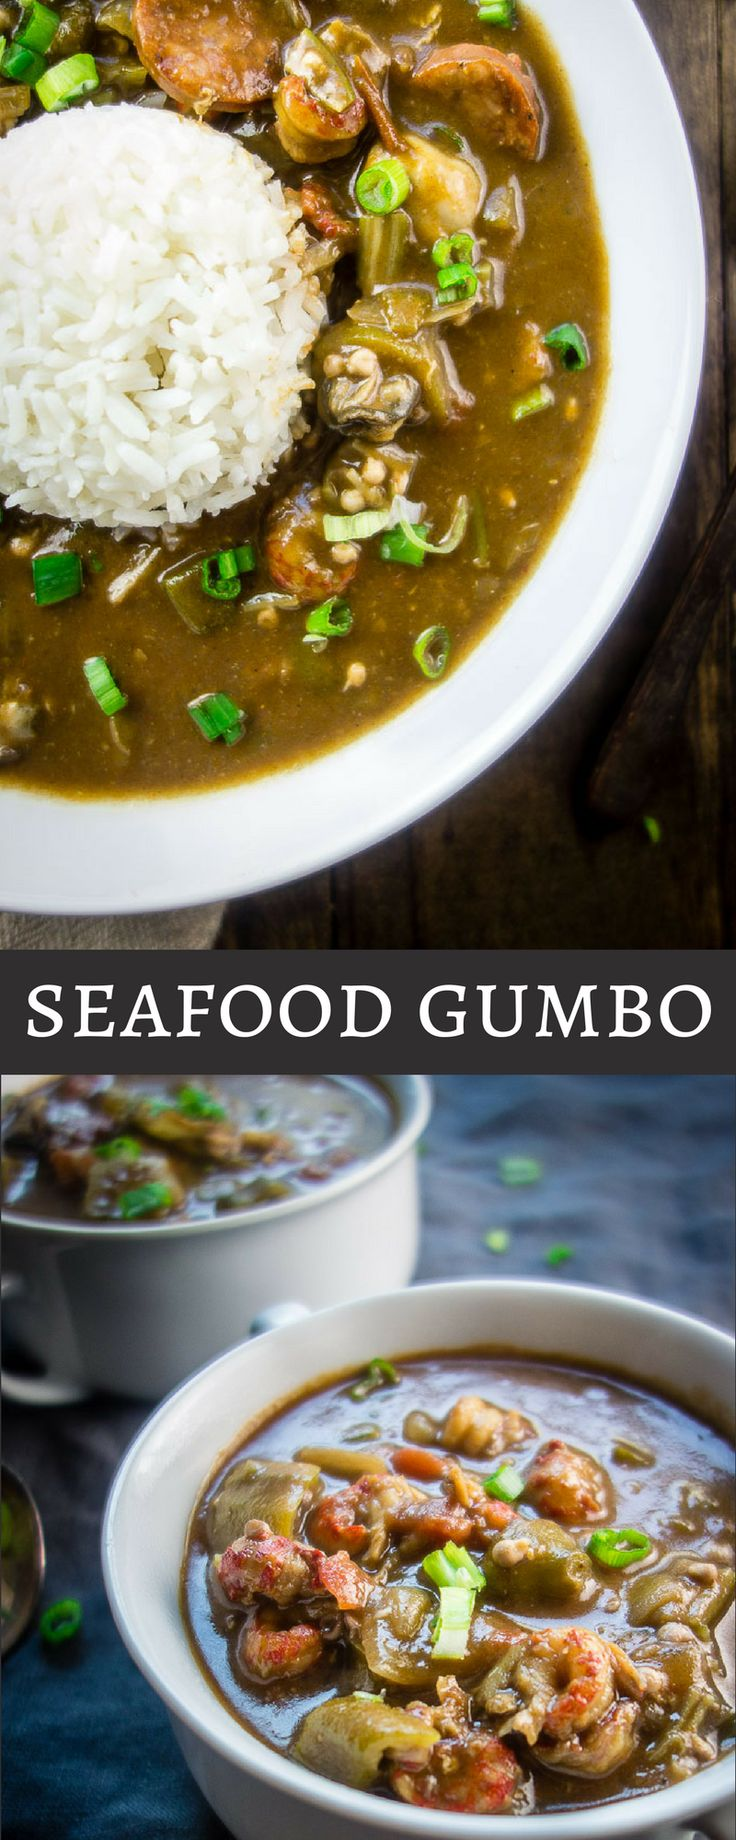 This Louisiana Seafood Gumbo with Okra is packed full of seafood including shrimp, crawfish, oysters, crab and andouille sausage - plus it only takes 40 minutes to make!  new orleans style gumbo | hearty gumbo | southern style gumbo | best seafood gumbo | easy gumbo recipe | quick gumbo recipes | creole gumbo | crab gumbo | oyster gumbo | sausage gumbo | dark roux | how to make gumbo | learn to make gumbo | one pot meals